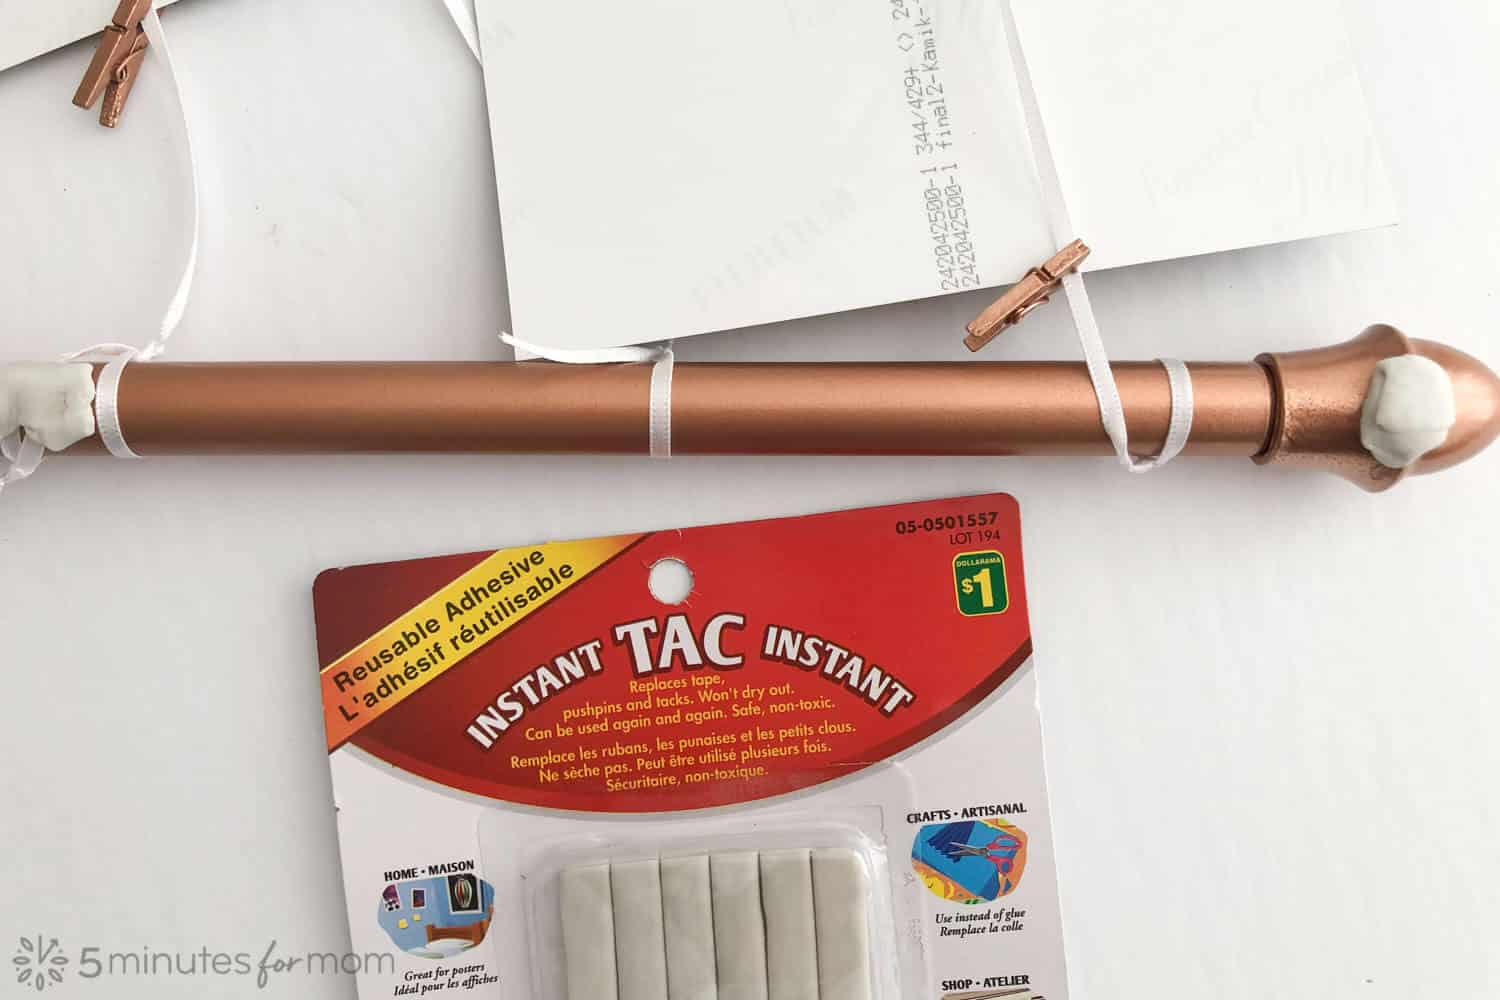 apply reusable adhesive tac to keep rod from scratching wall